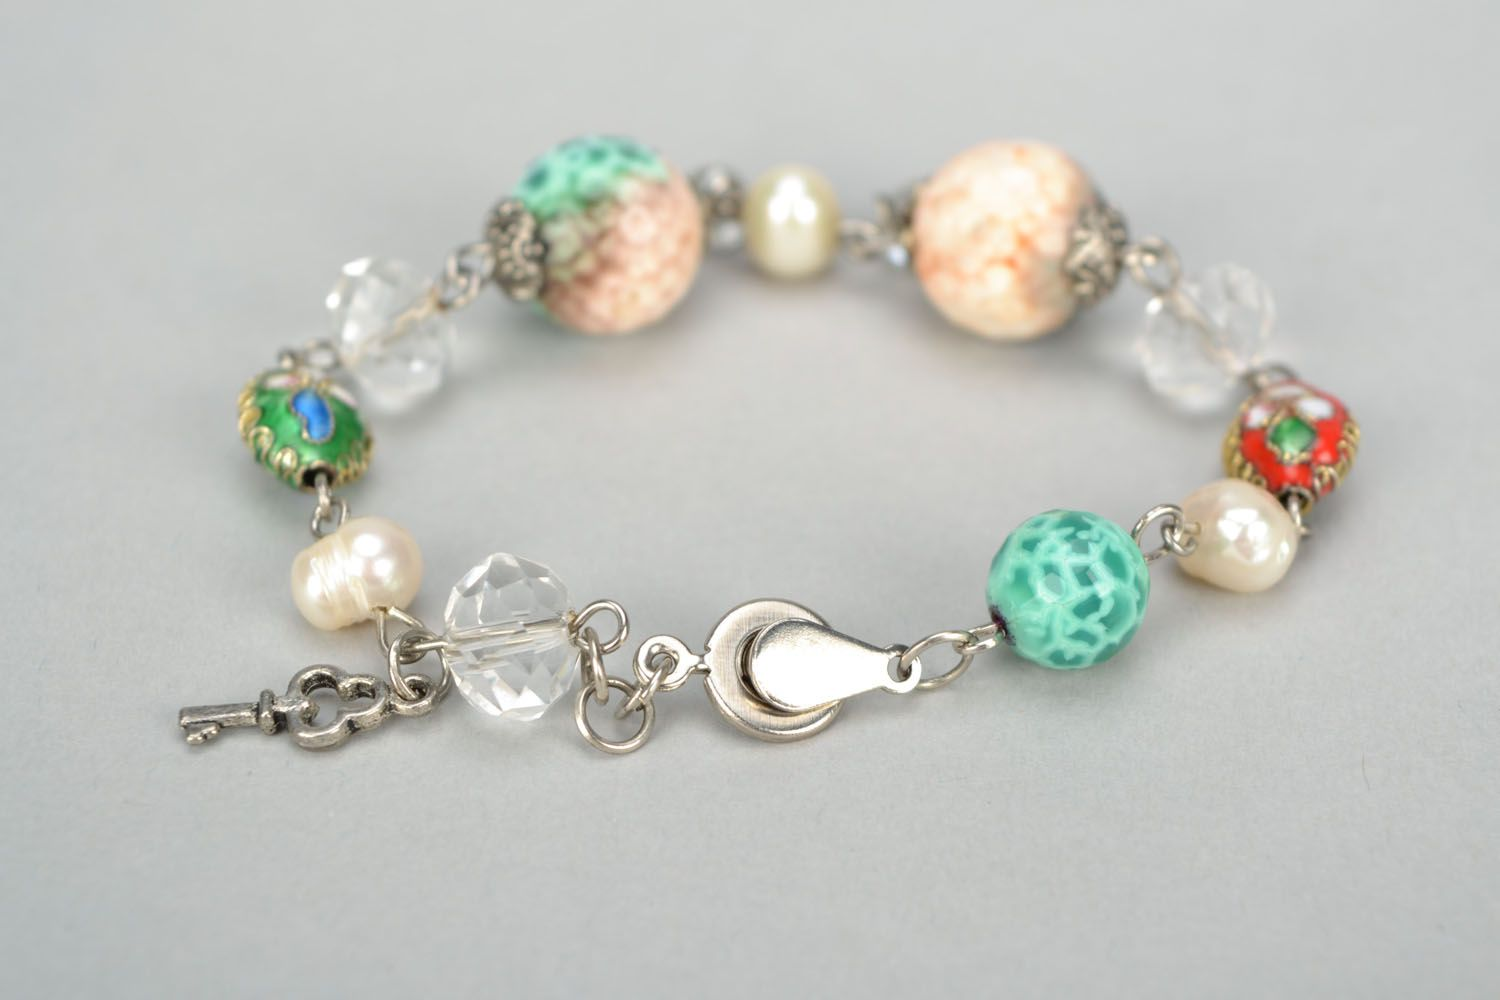 Bracelet with agate and river pearls photo 5